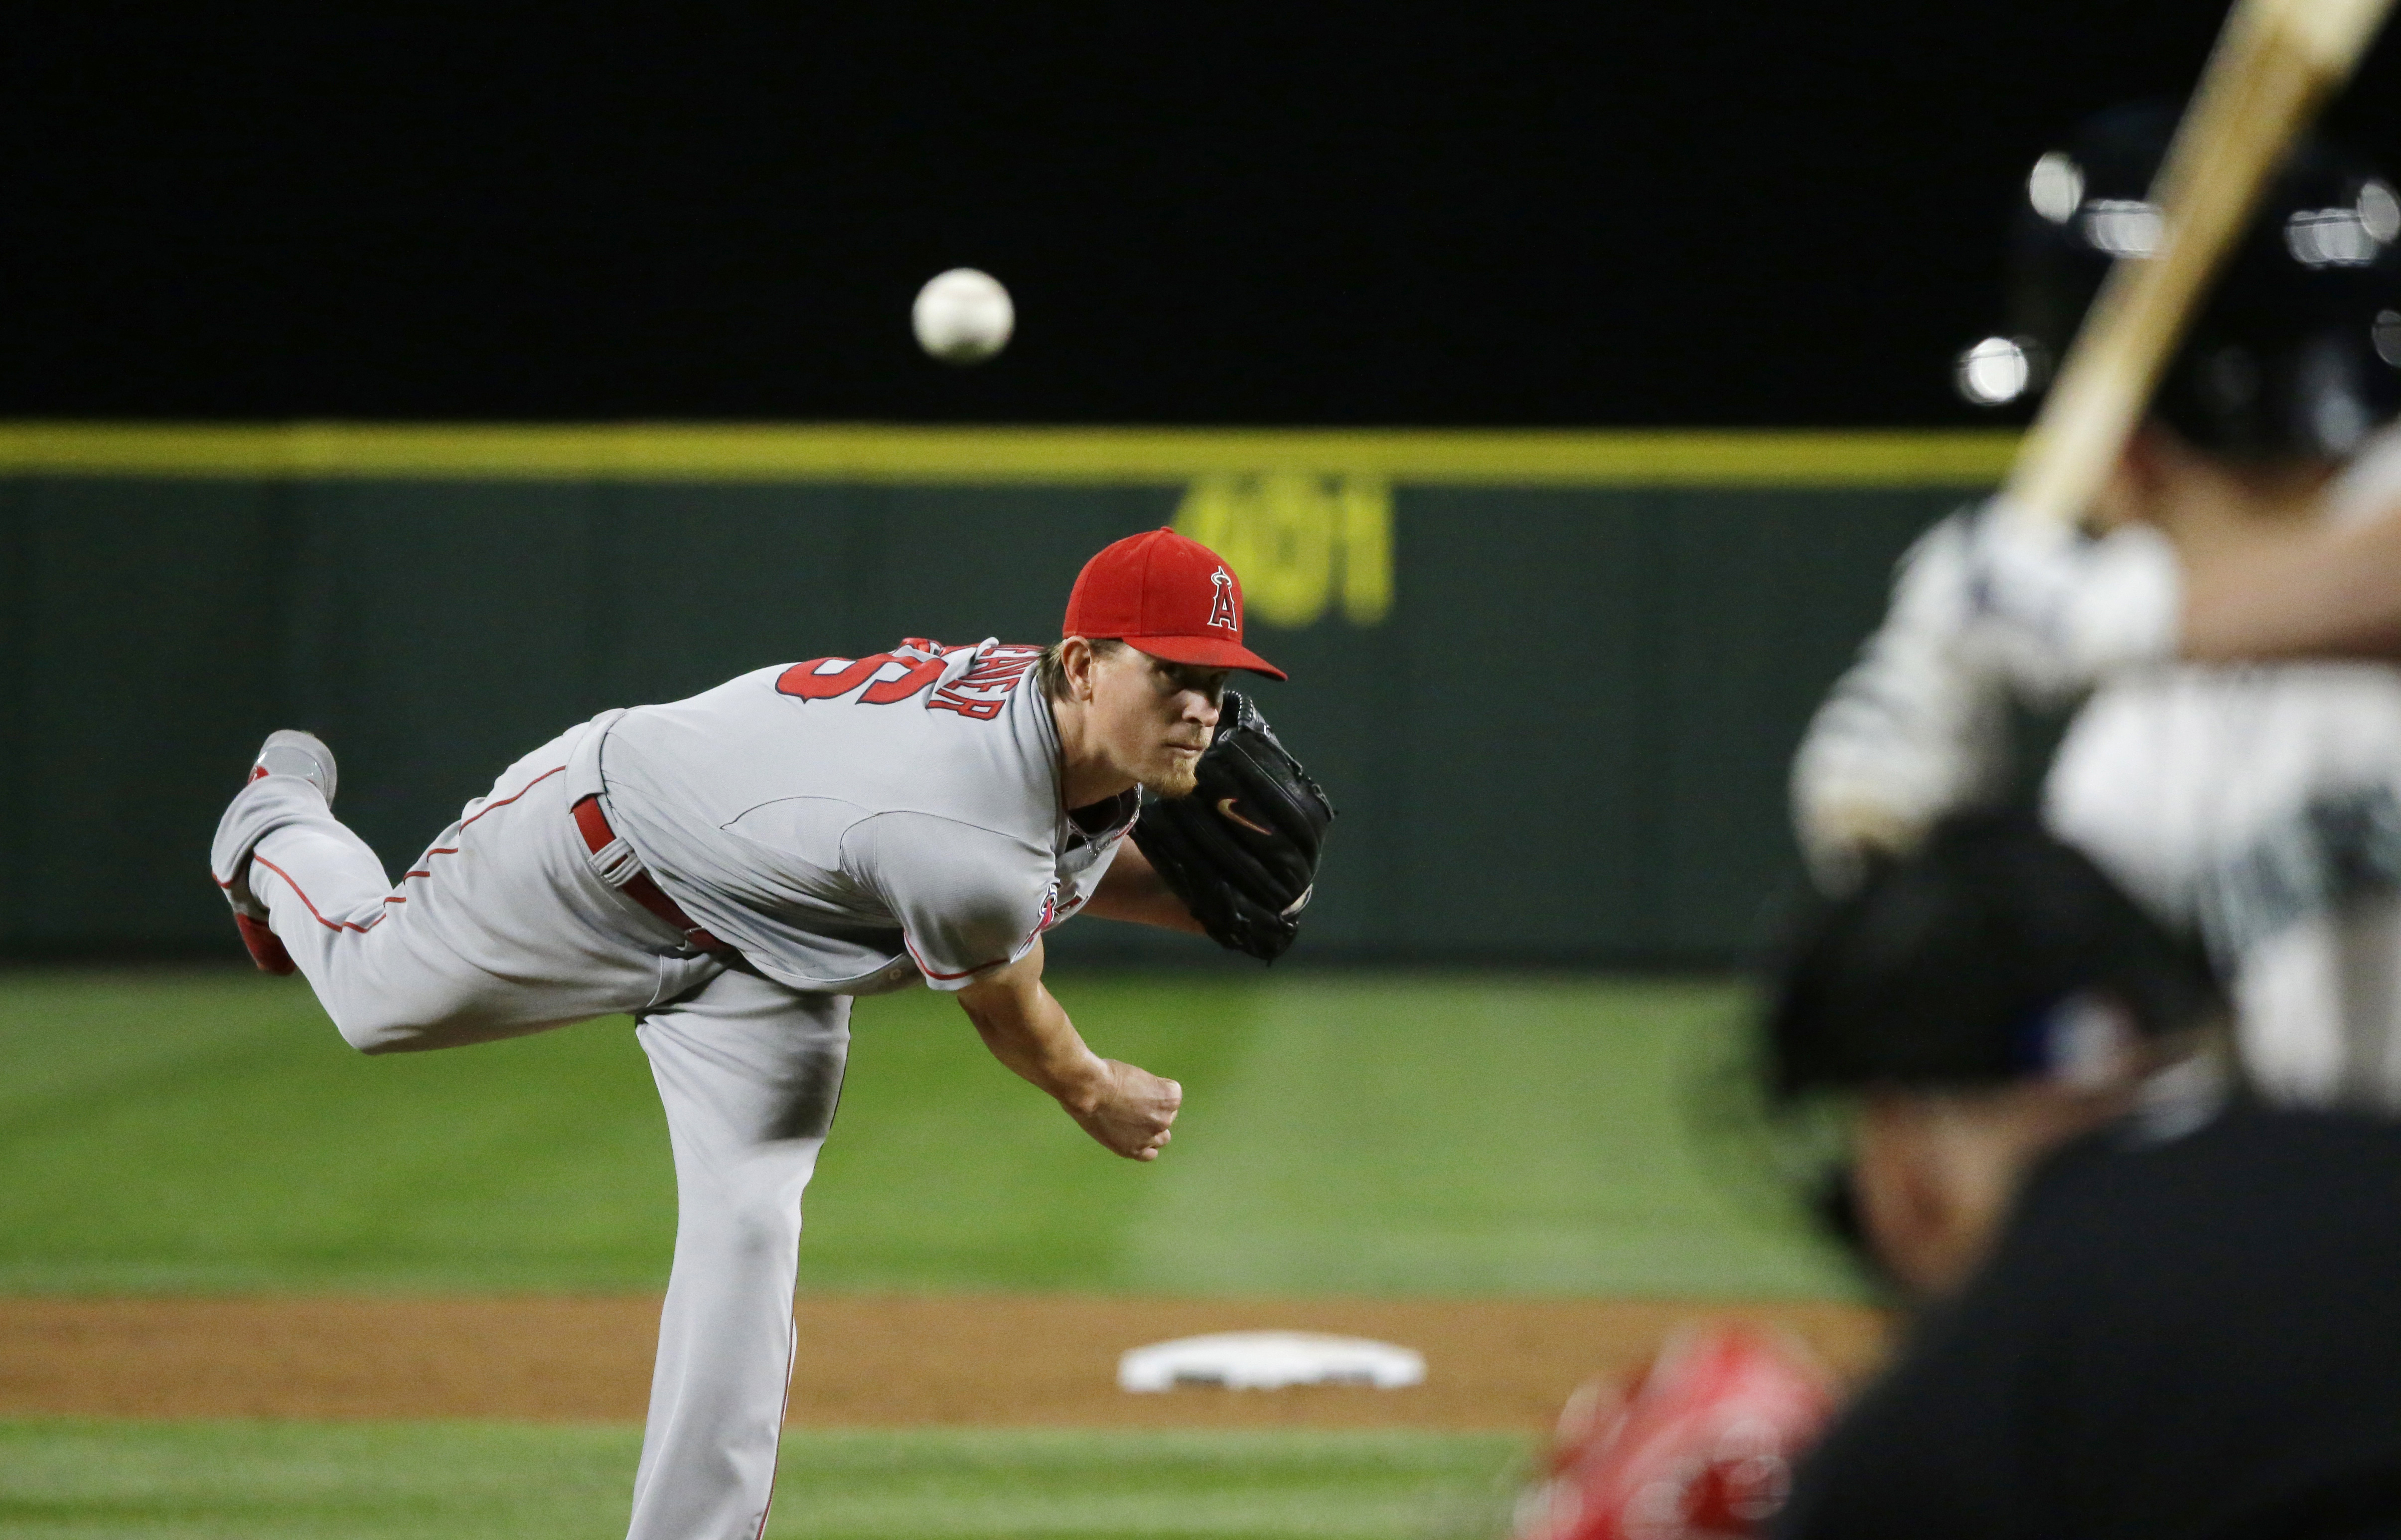 Los Angeles Angels starting pitcher Jered Weaver throws a pitch that hit Seattle Mariners' Kyle Seager, right, duriong the fifth inning of a baseball game, Wednesday, Sept. 16, 2015, in Seattle. Weaver was ejected from the game by home plate umpire Brian